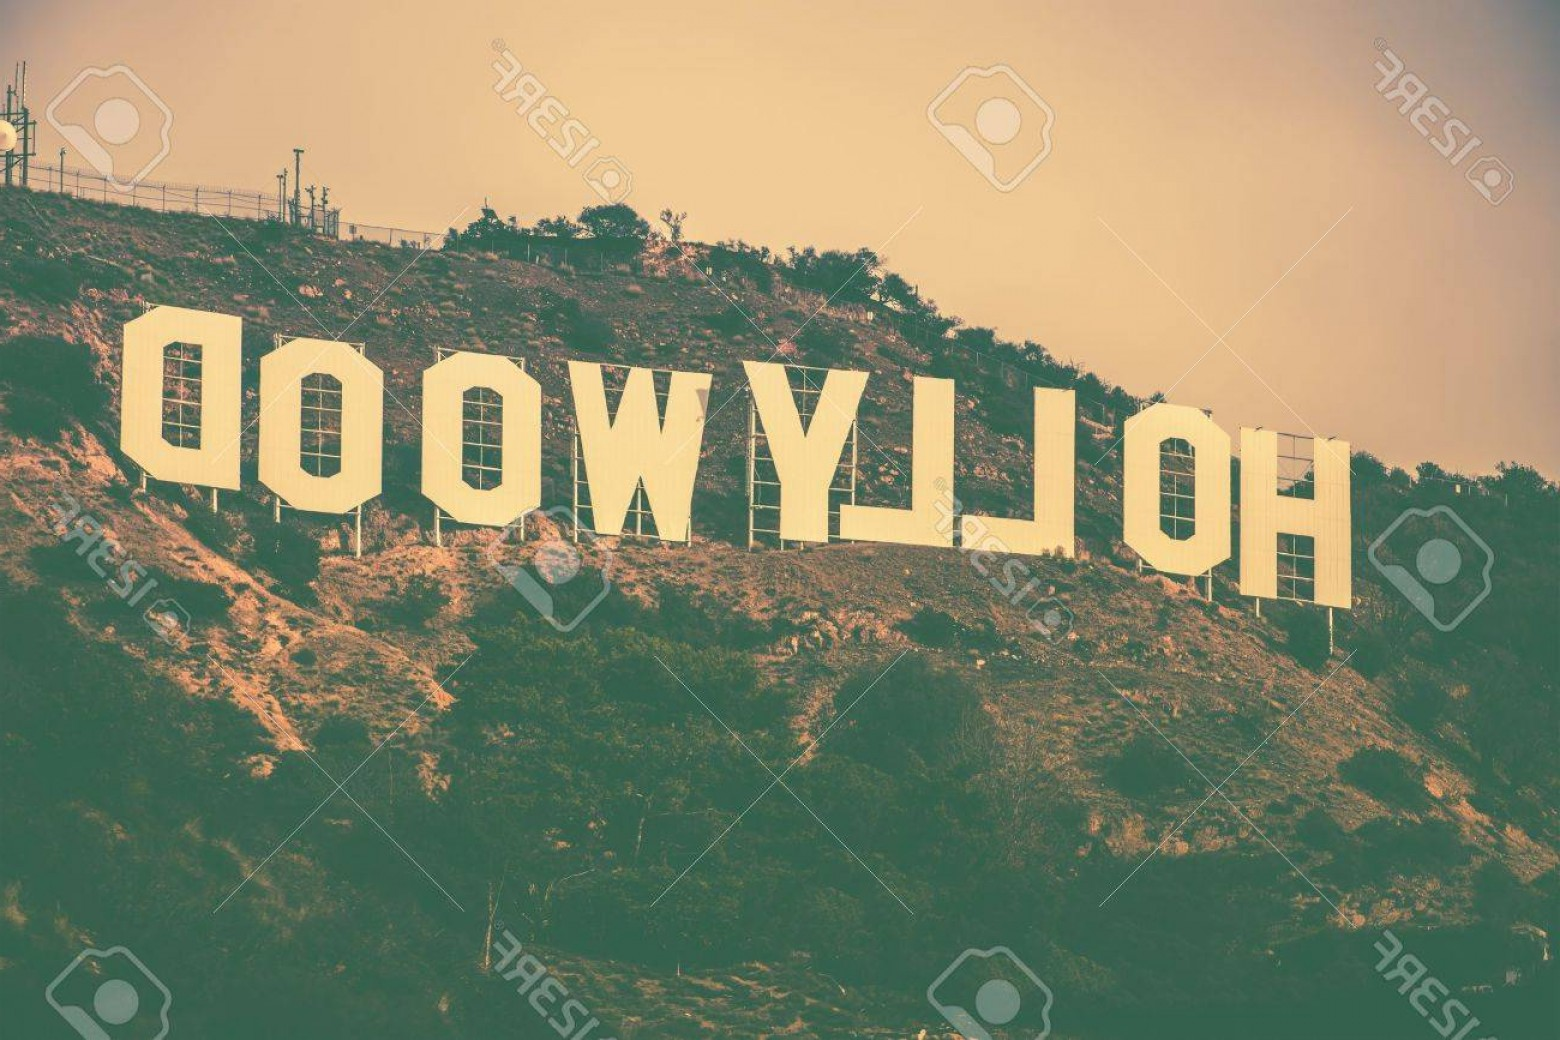 Hollywood Hills Vector: Photofamous Hollywood Hills In Los Angeles Metro Area California United States Hollywood Sign In Vintage